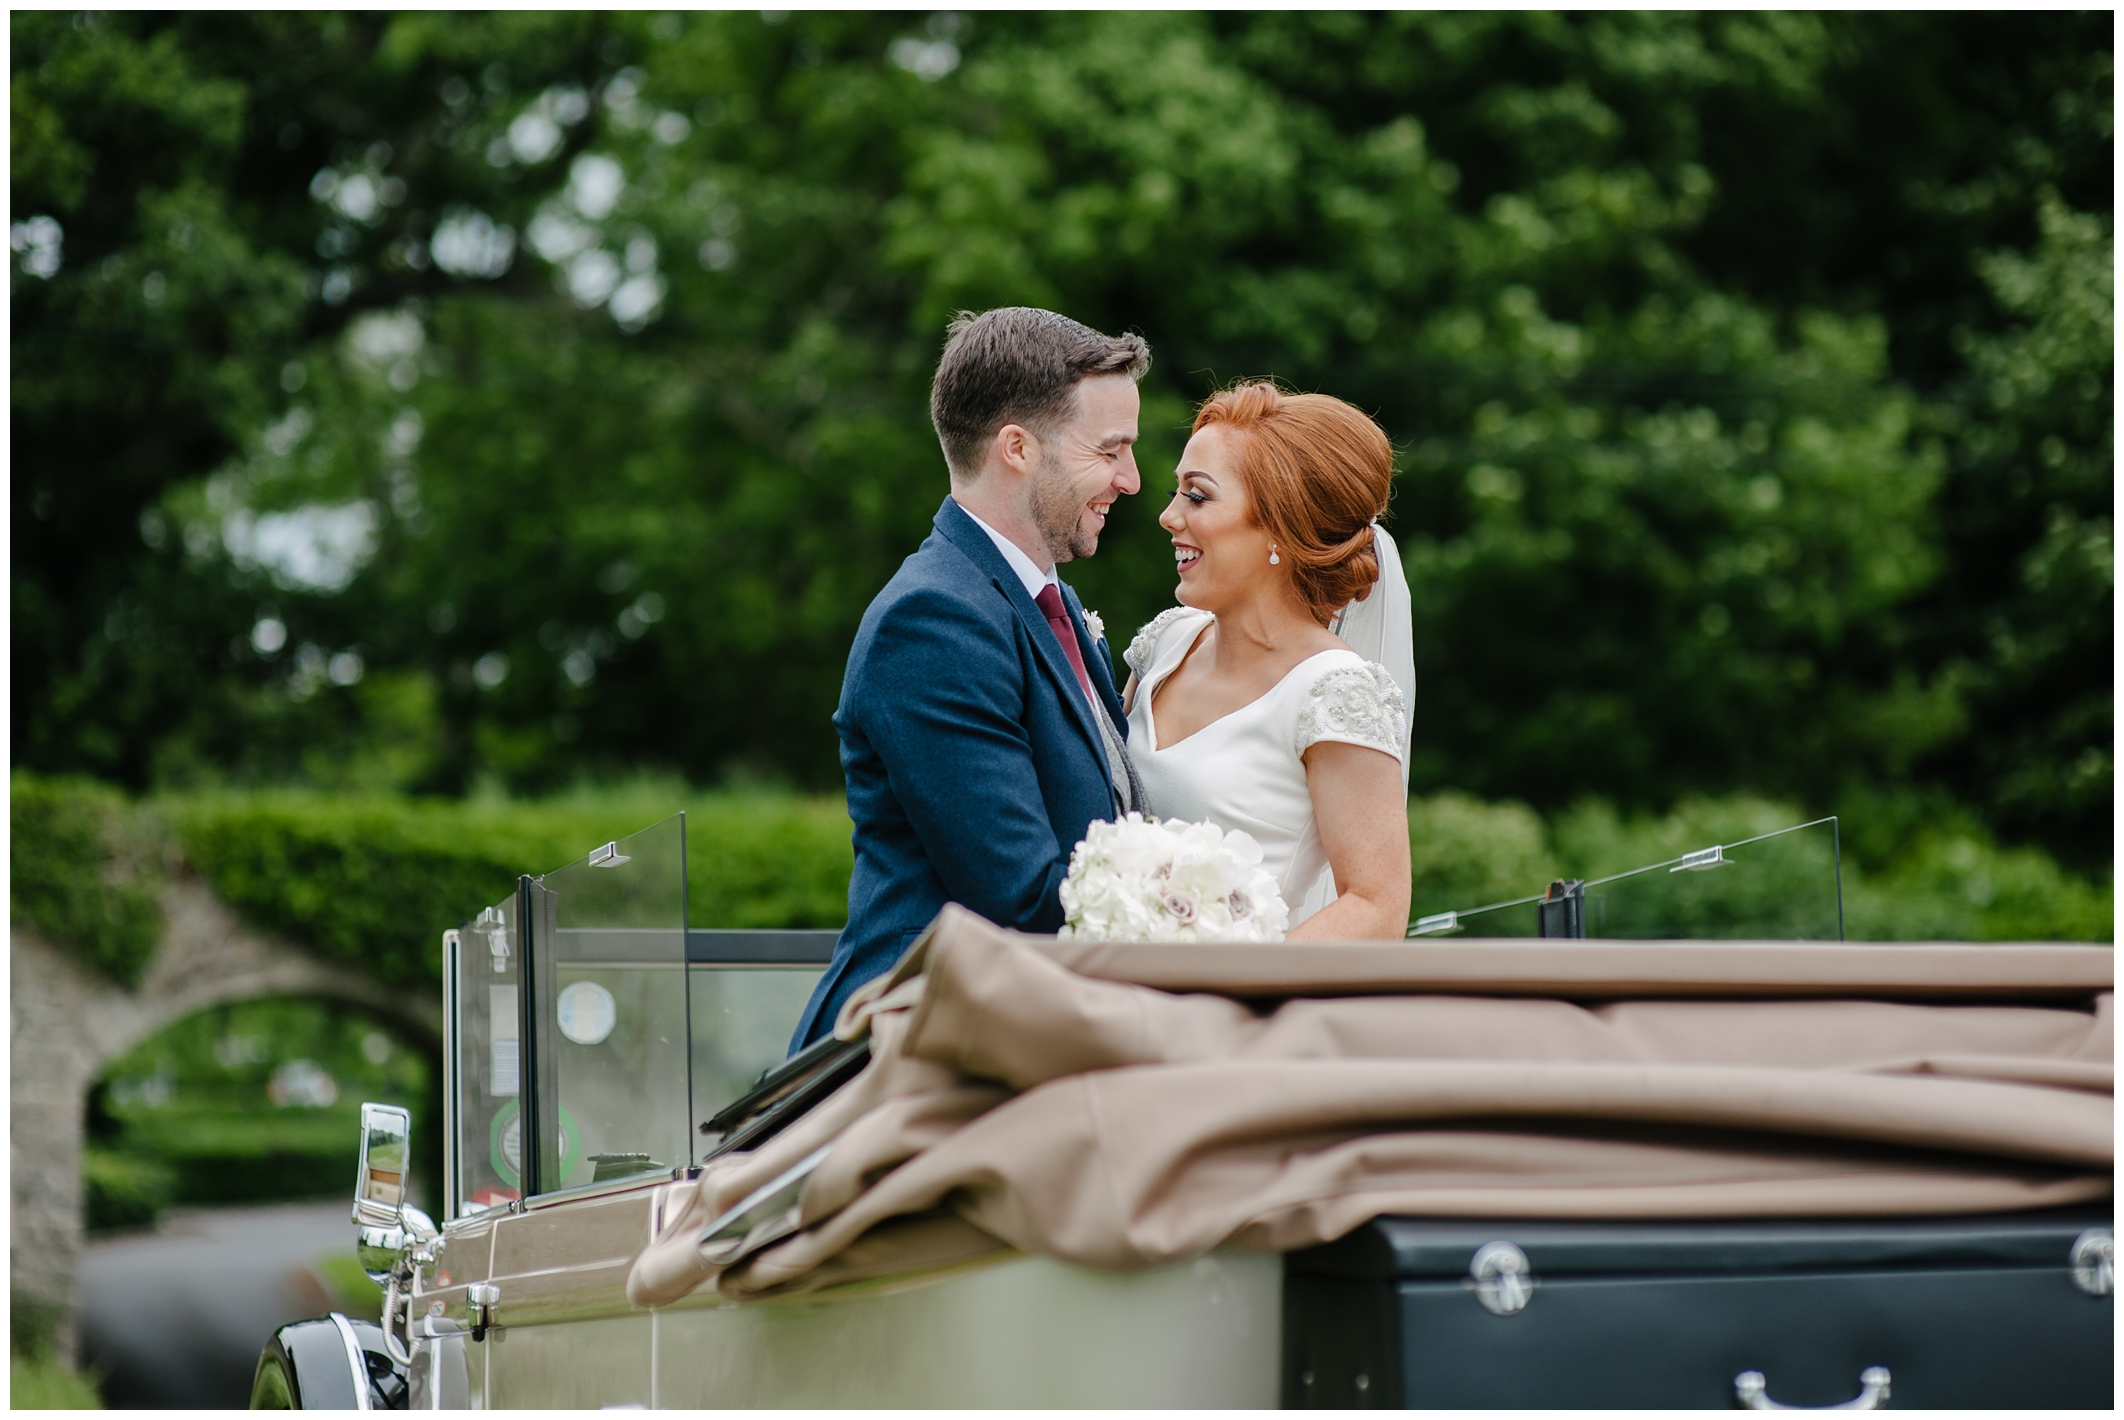 sinead_emmet_farnham_estate_wedding_jude_browne_photography_0090.jpg